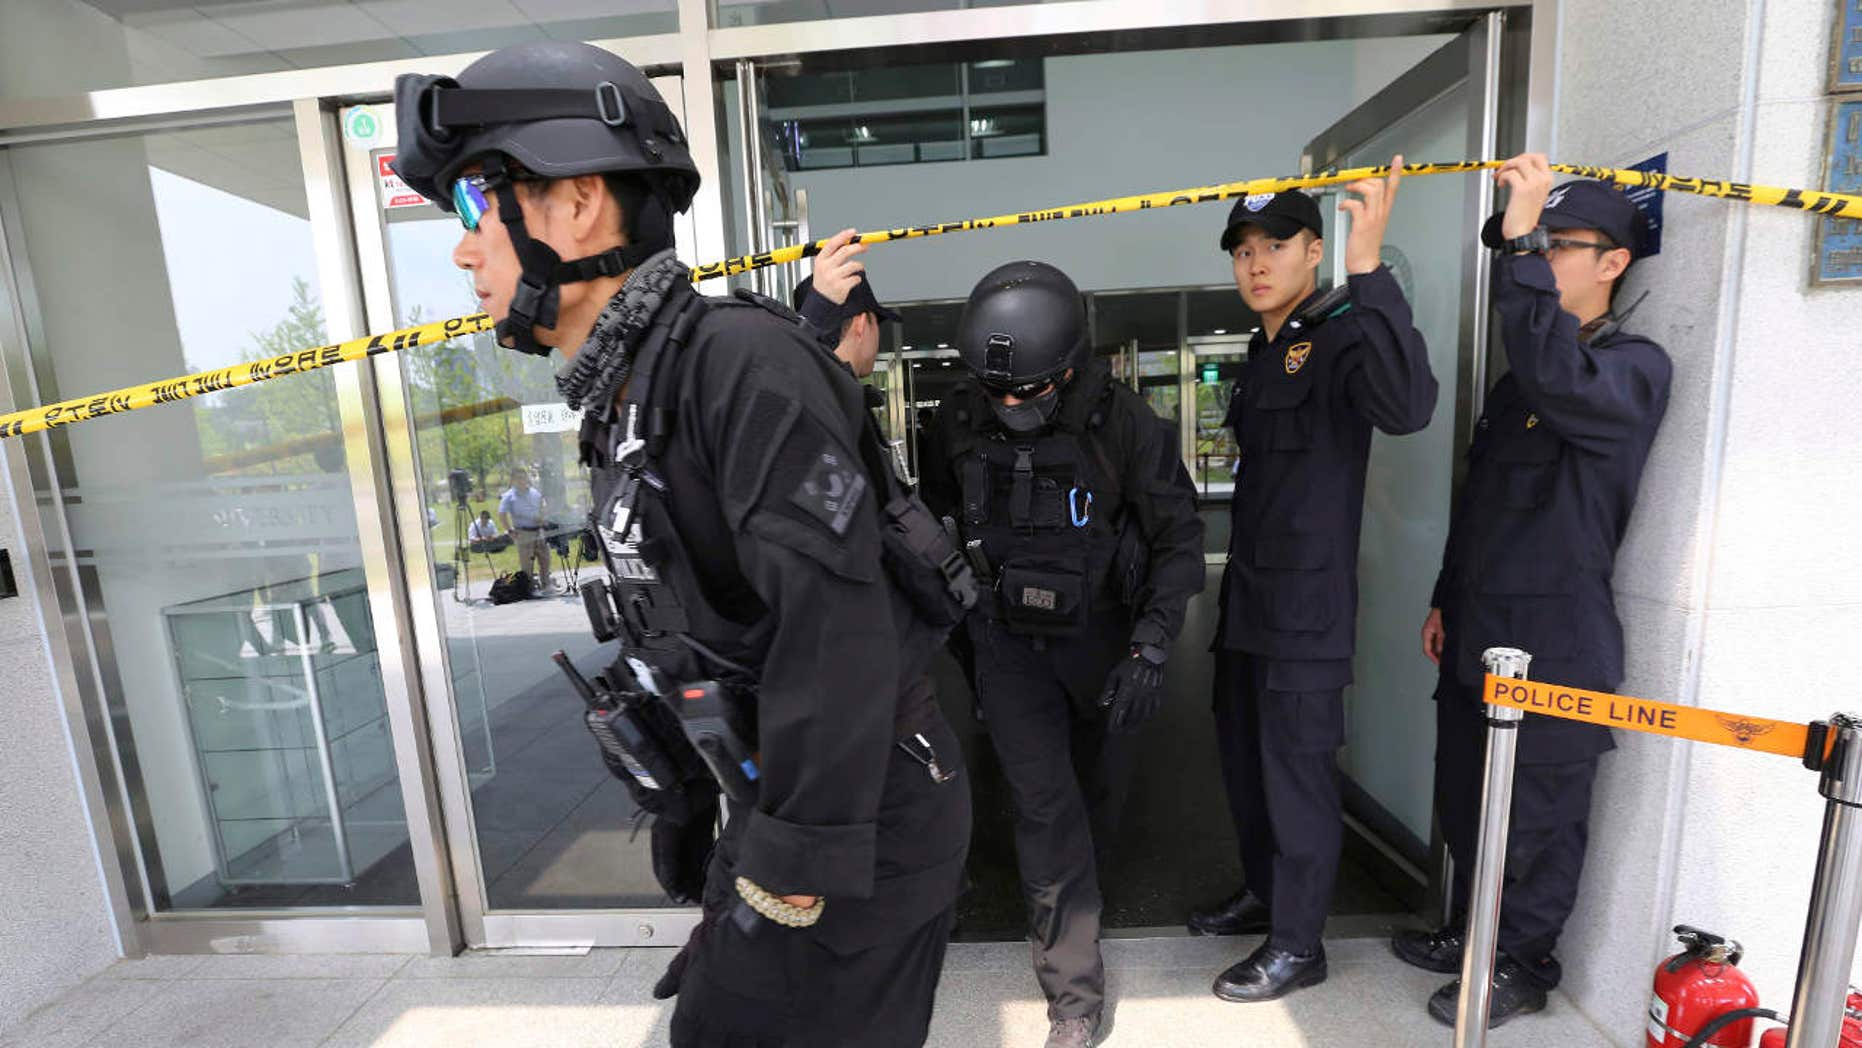 South Korean police officers come out of an engineering faculty building at Yonsei University in Seoul, South Korea, Tuesday, June 13, 2017.